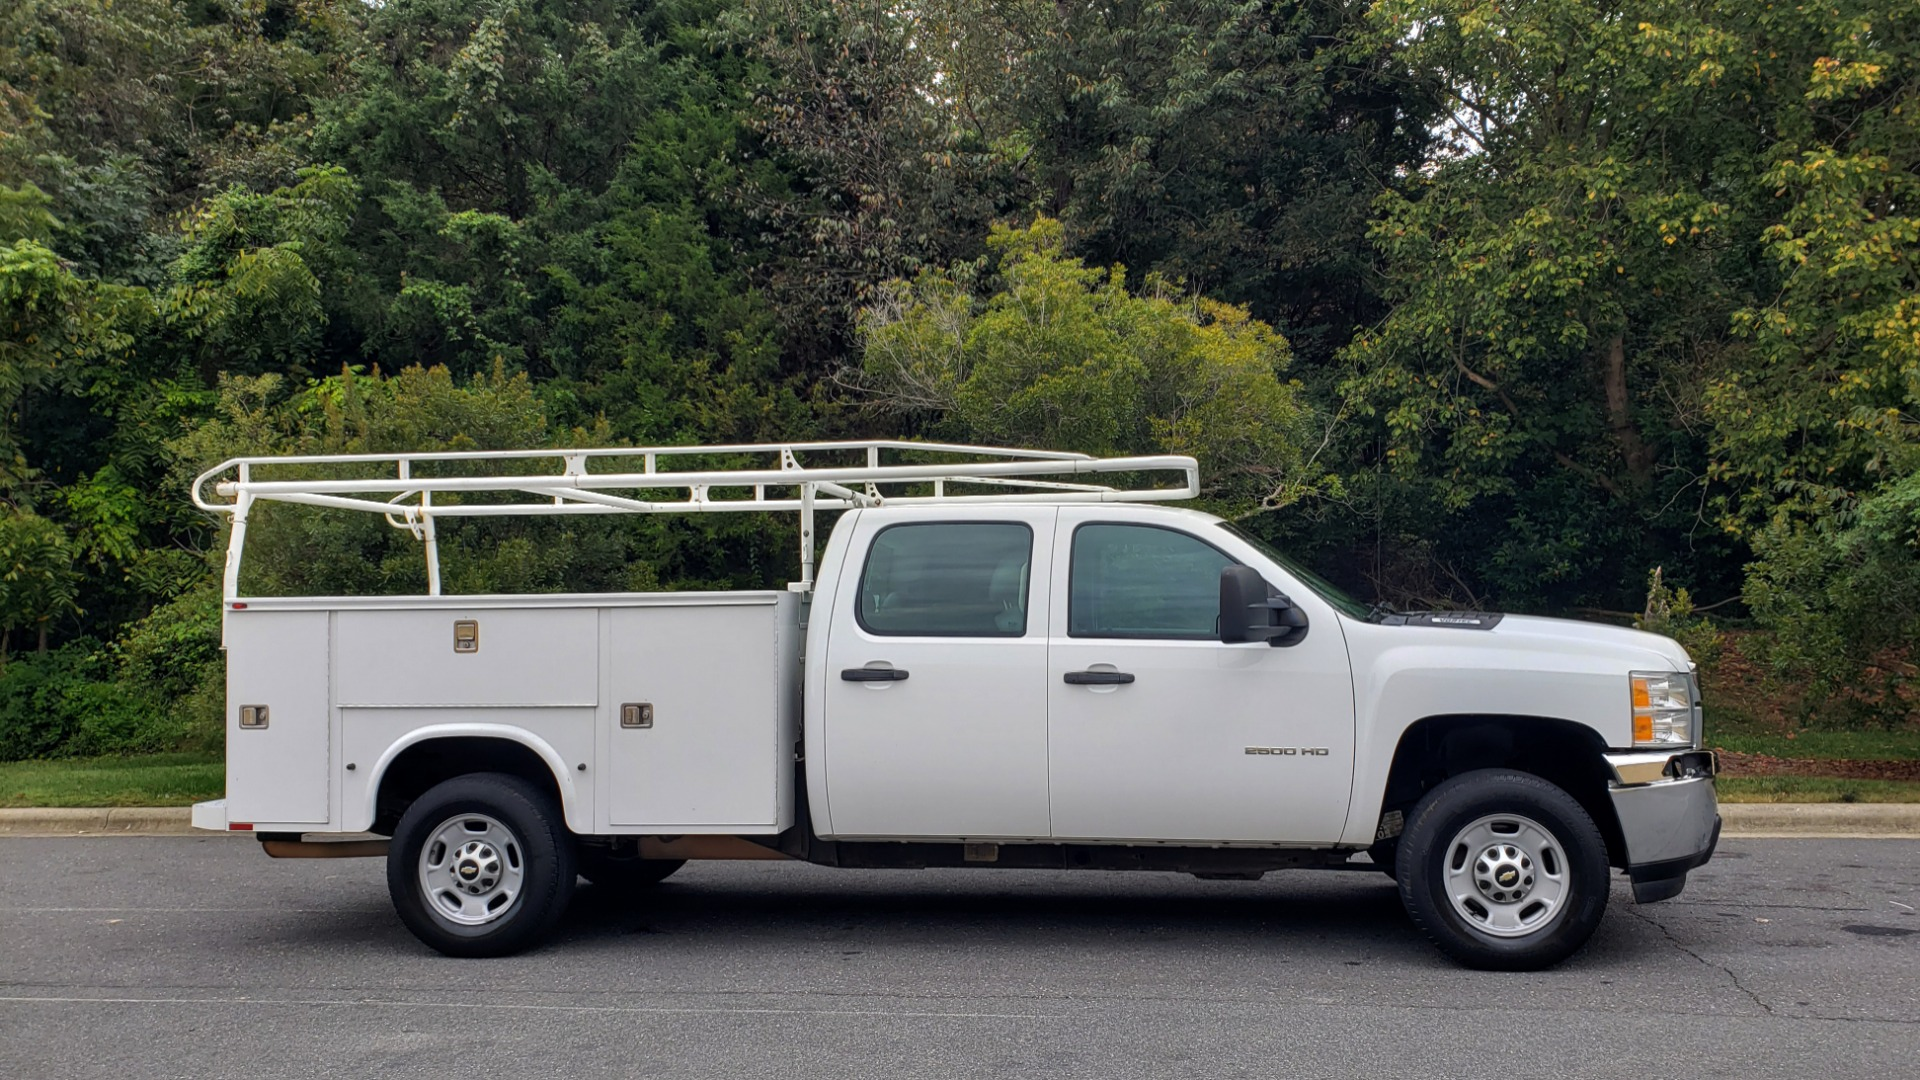 Used 2013 Chevrolet SILVERADO 2500HD WORK TRUCK 4WD / 6.0L V8 / AUTO / TOOL BOX / CLEAN for sale Sold at Formula Imports in Charlotte NC 28227 10